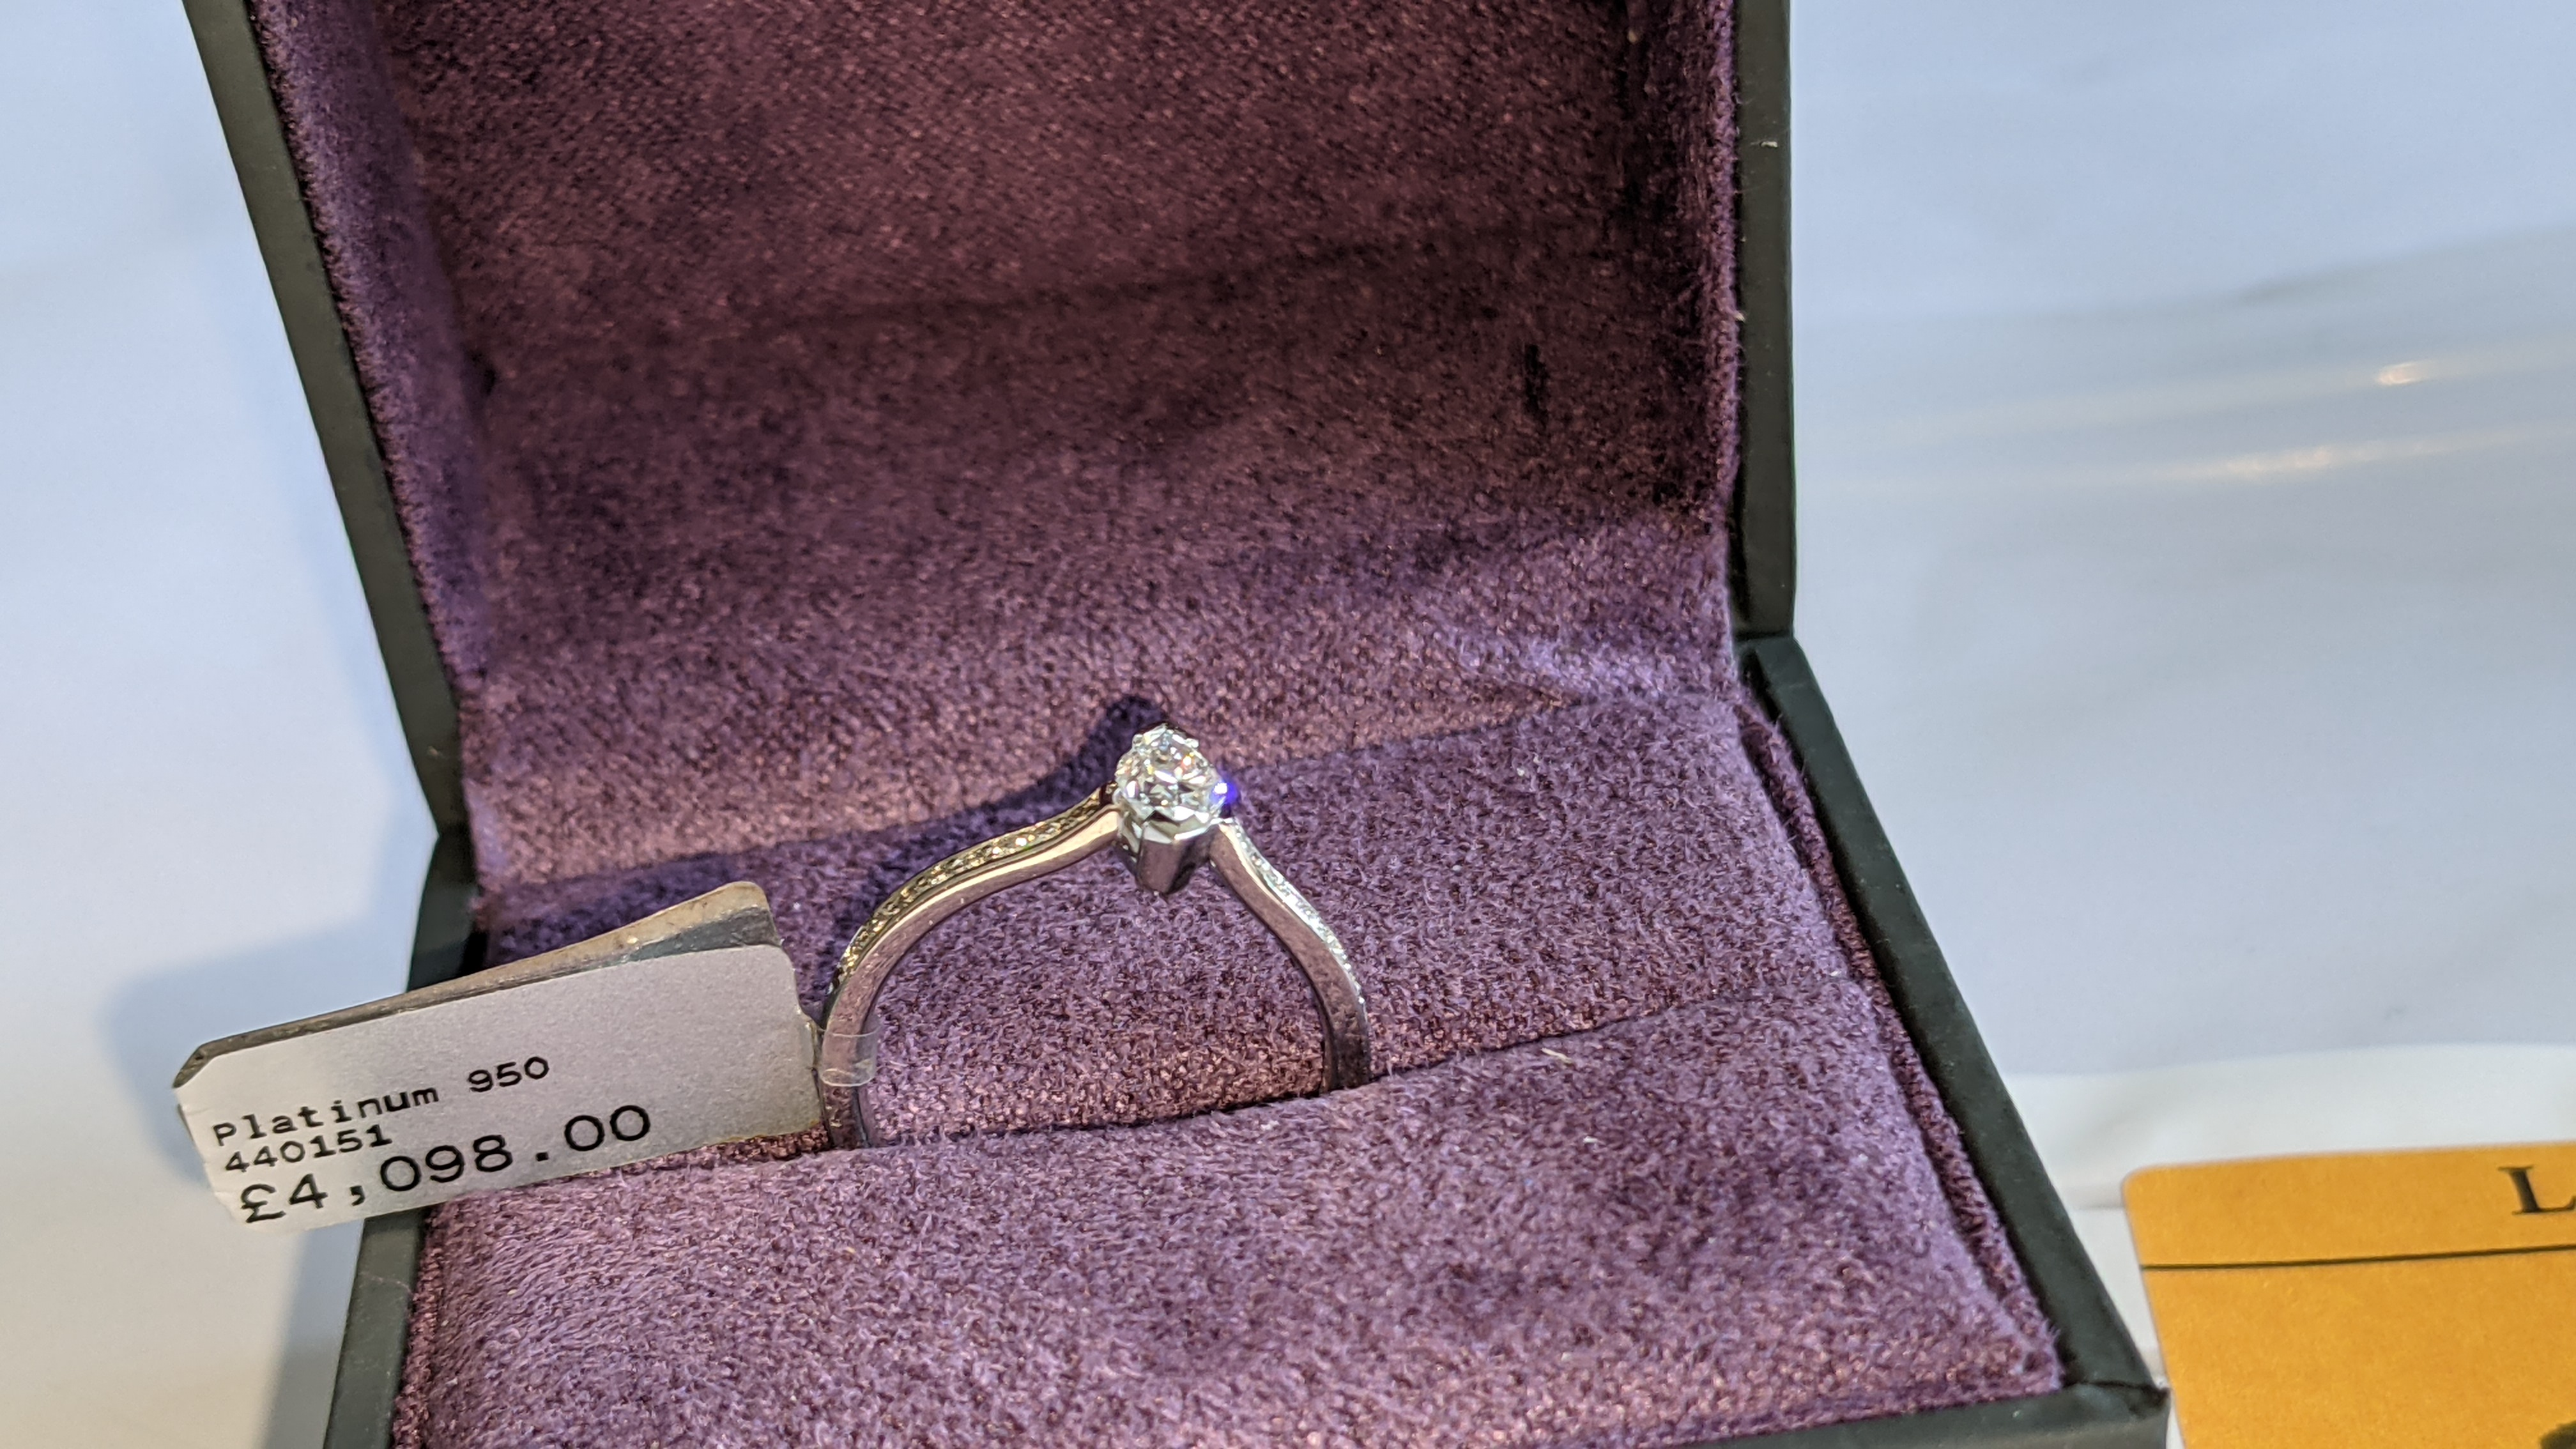 Platinum 950 ring with marquise shaped central diamond plus diamonds on the shoulders either side, t - Image 3 of 16